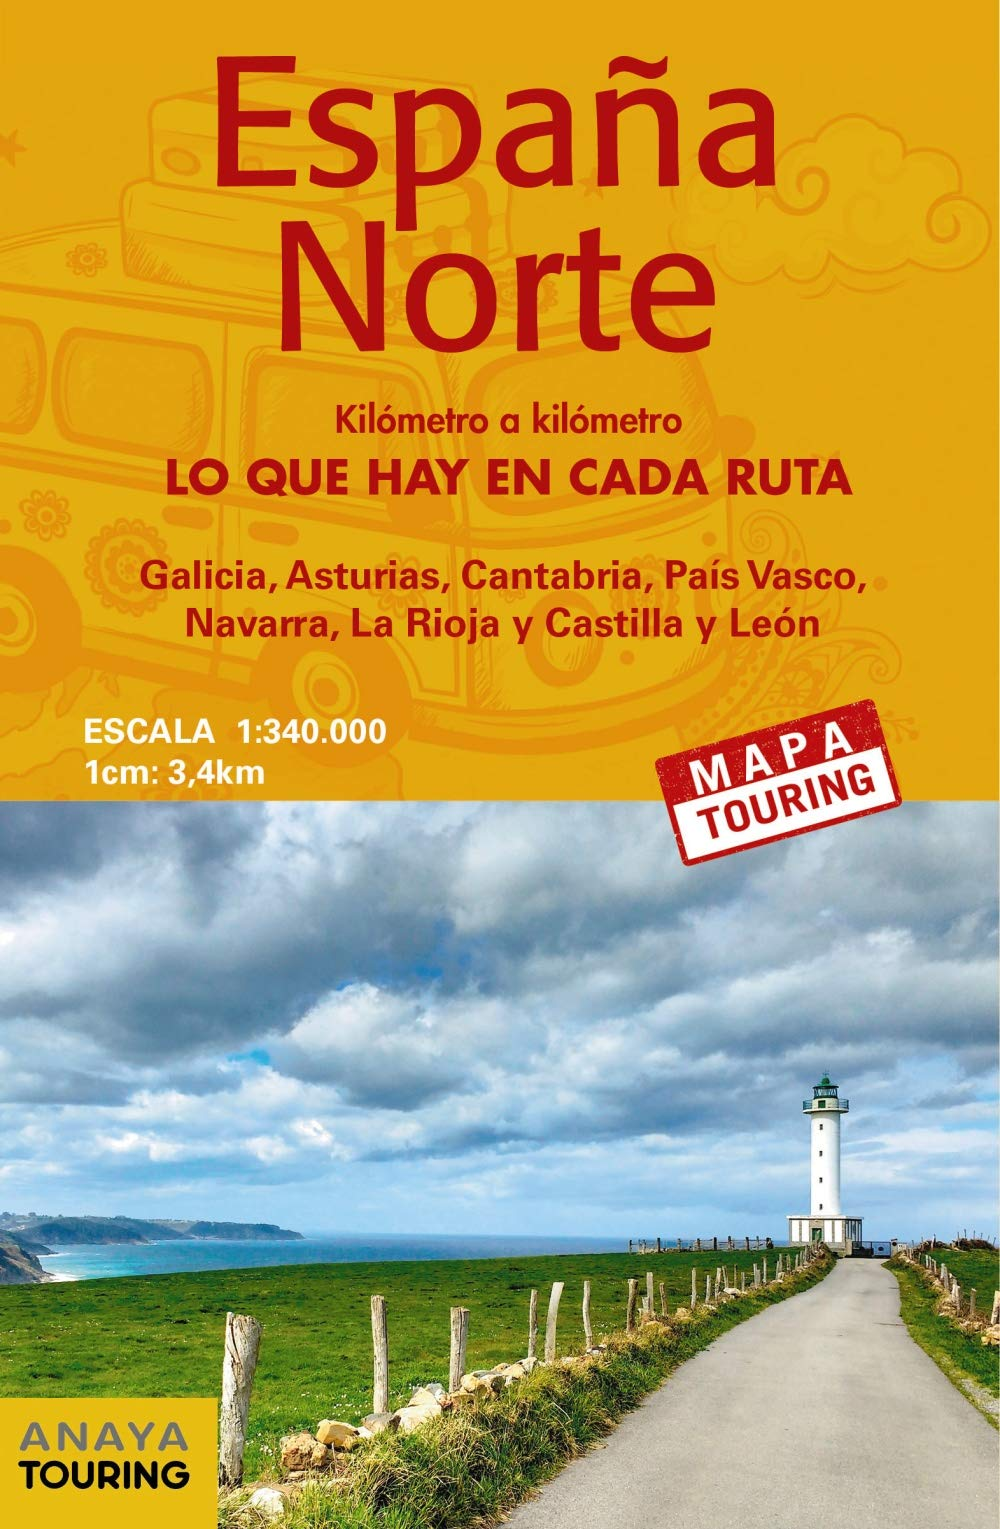 Mapa de carreteras 1:340.000 - España Norte desplegable Mapa Touring: Amazon.es: Anaya Touring: Libros